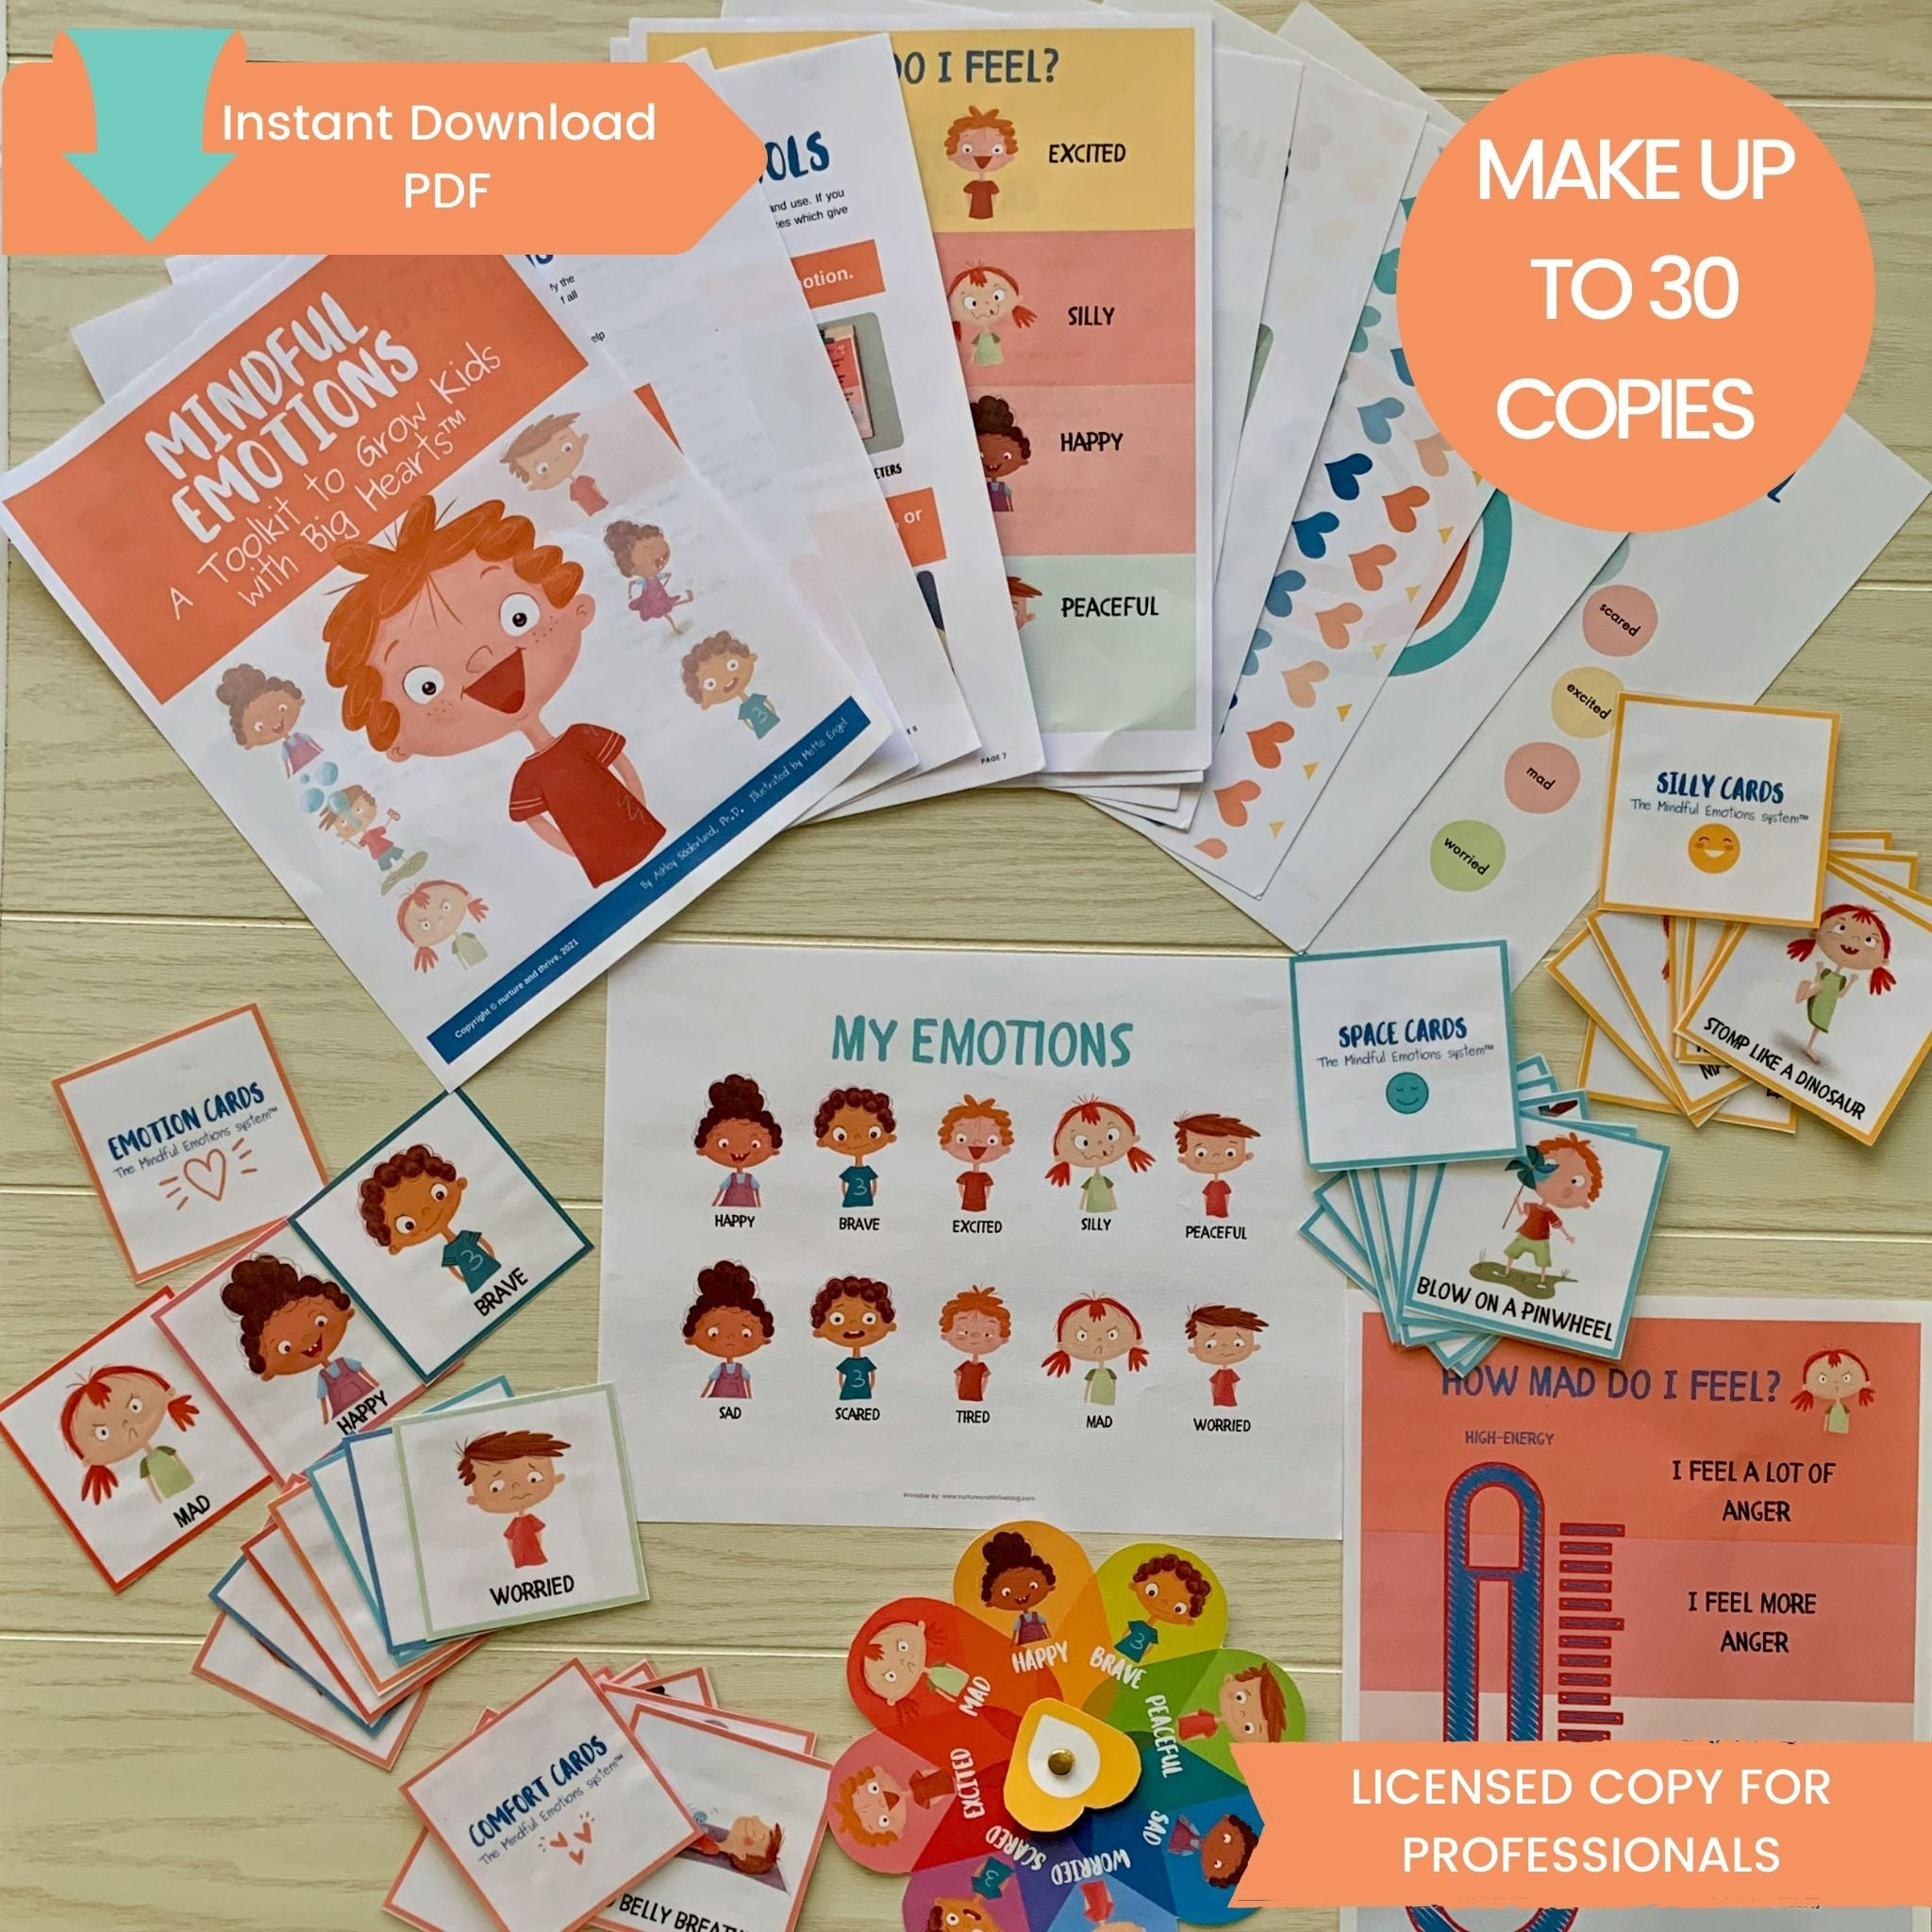 Licensed Copy for Professionals - Mindful Emotions: A Toolkit to Grow Kids with Big Hearts™